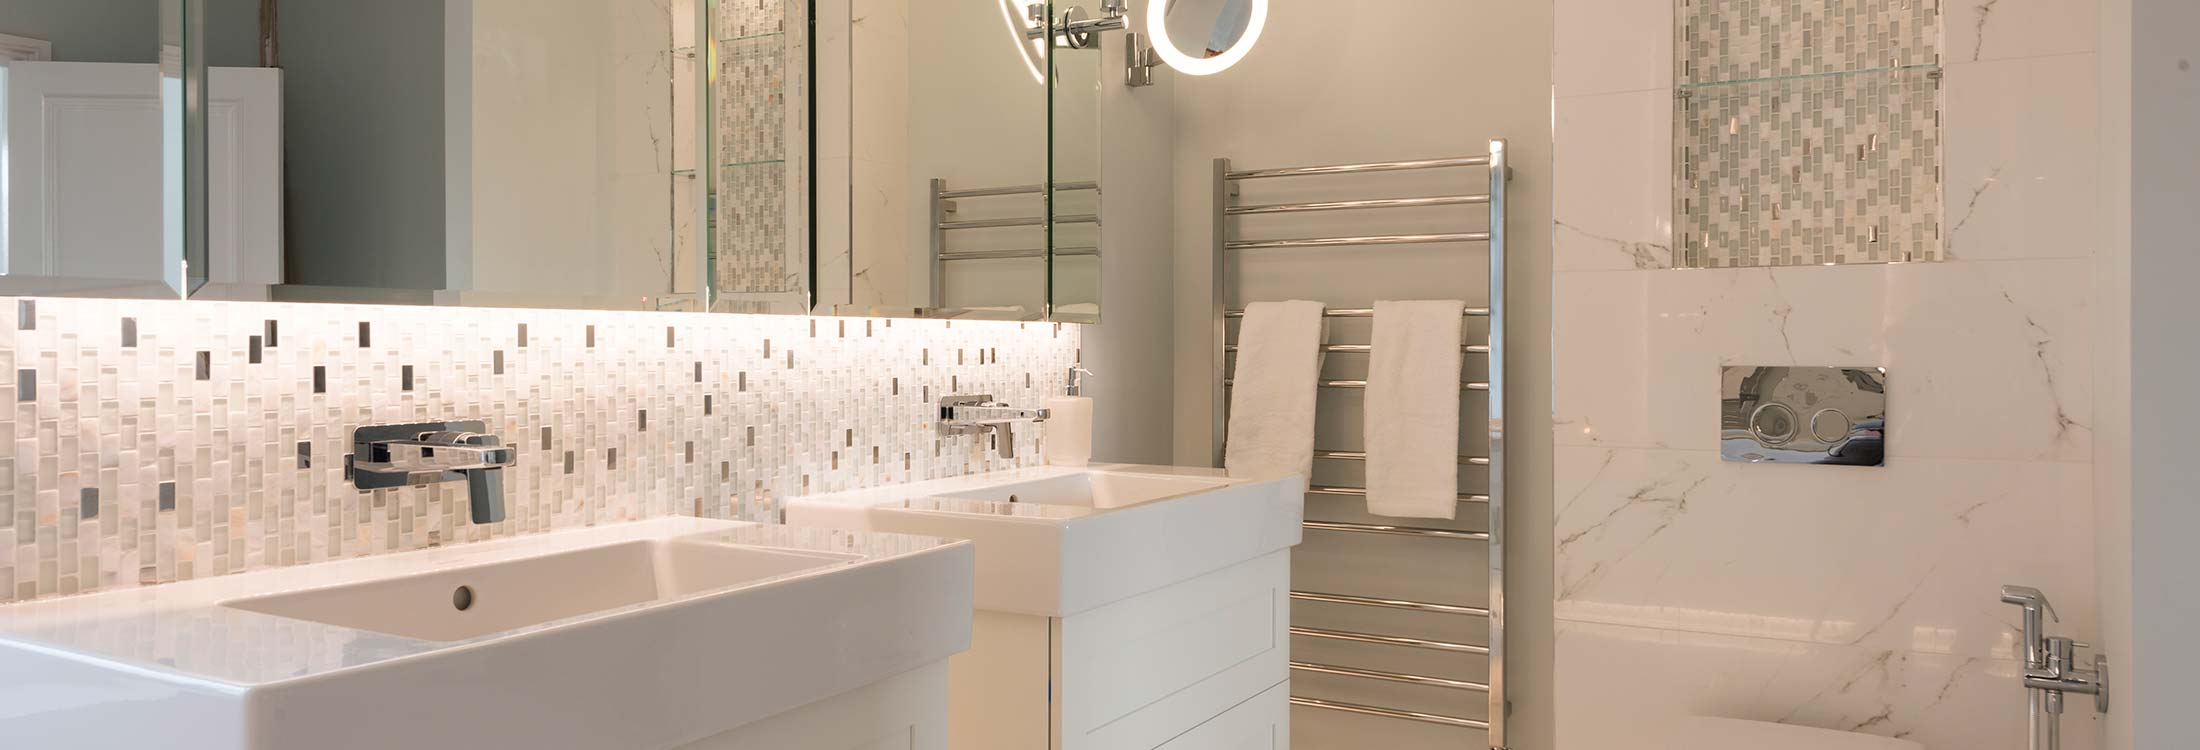 Highest quality luxury bathroom supply in Long Ditton, Surrey